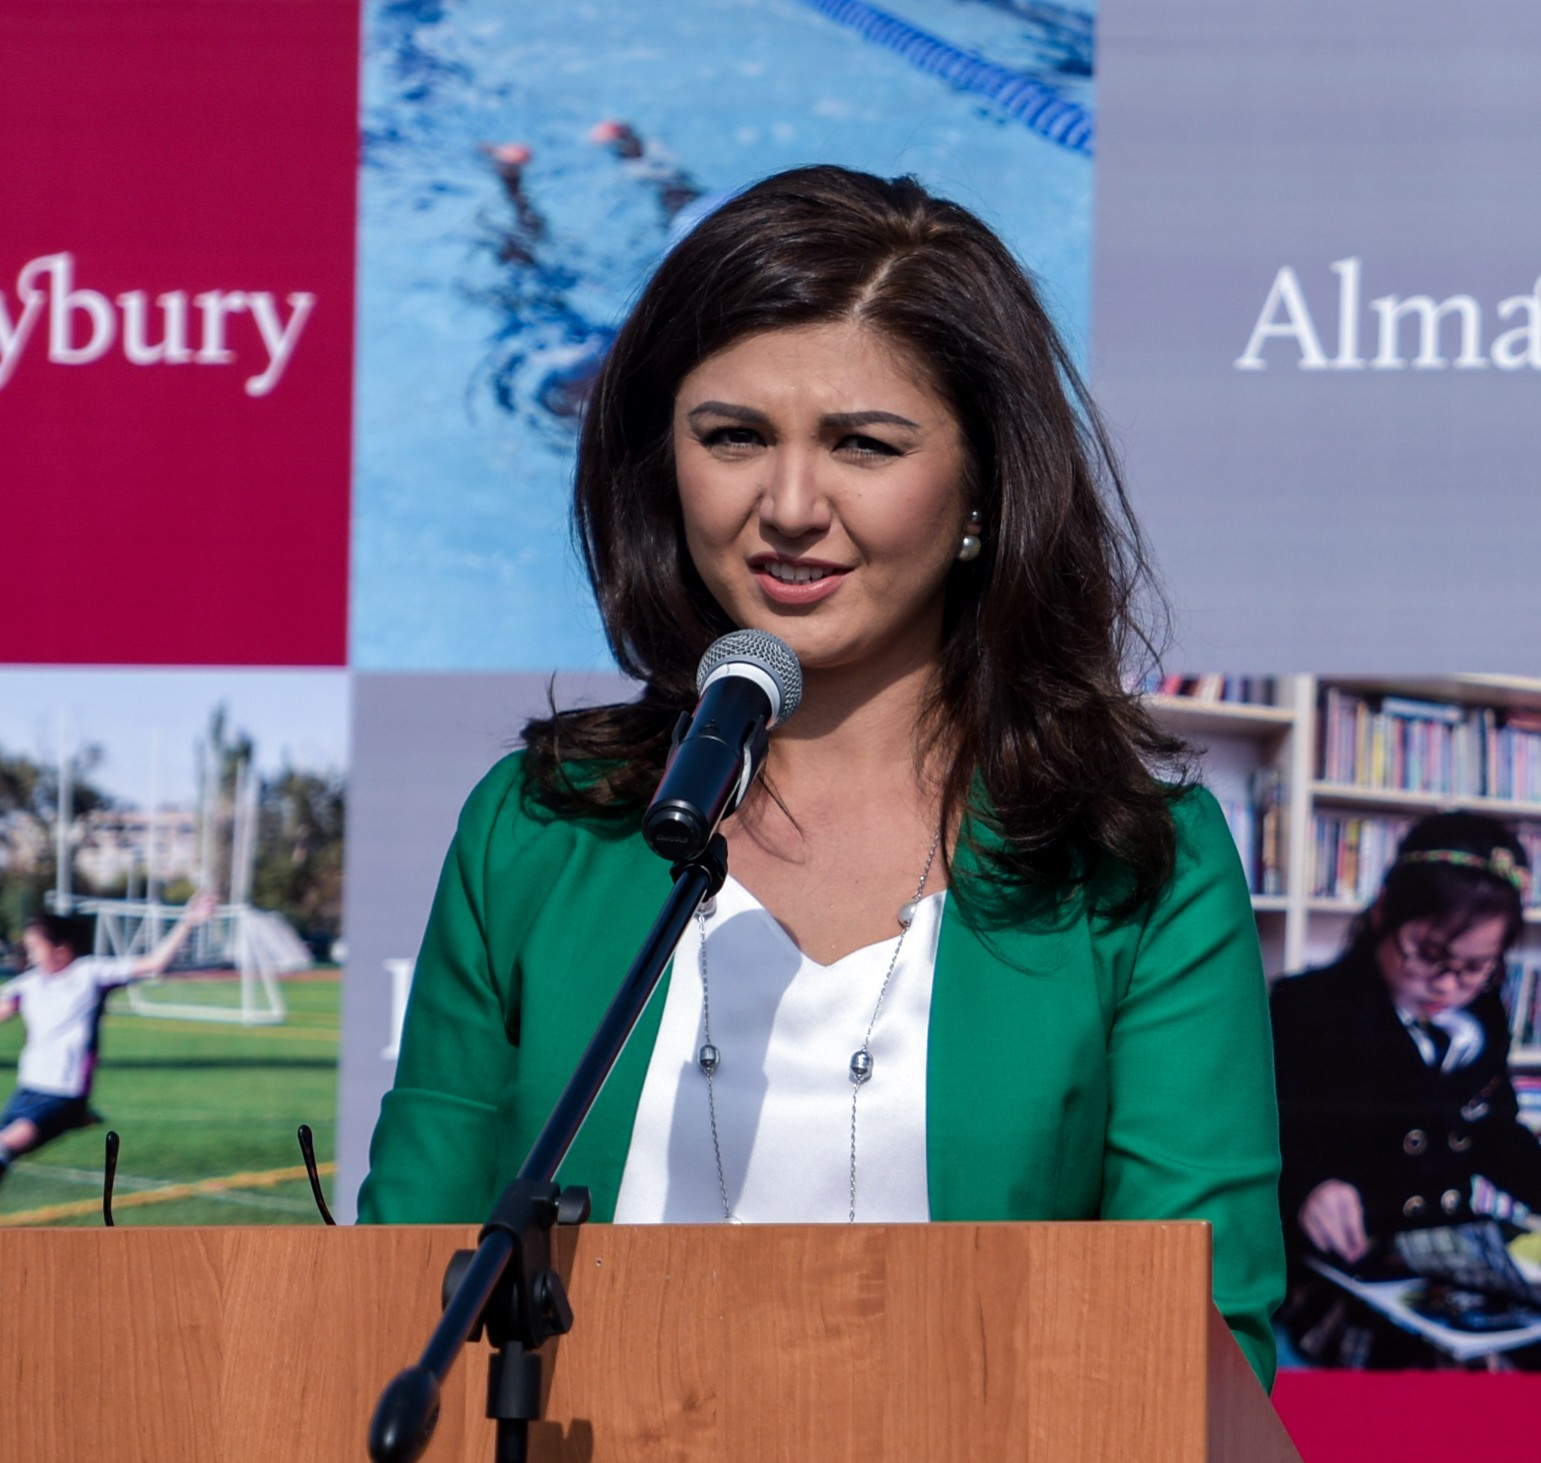 British independent school in Haileybury Almaty